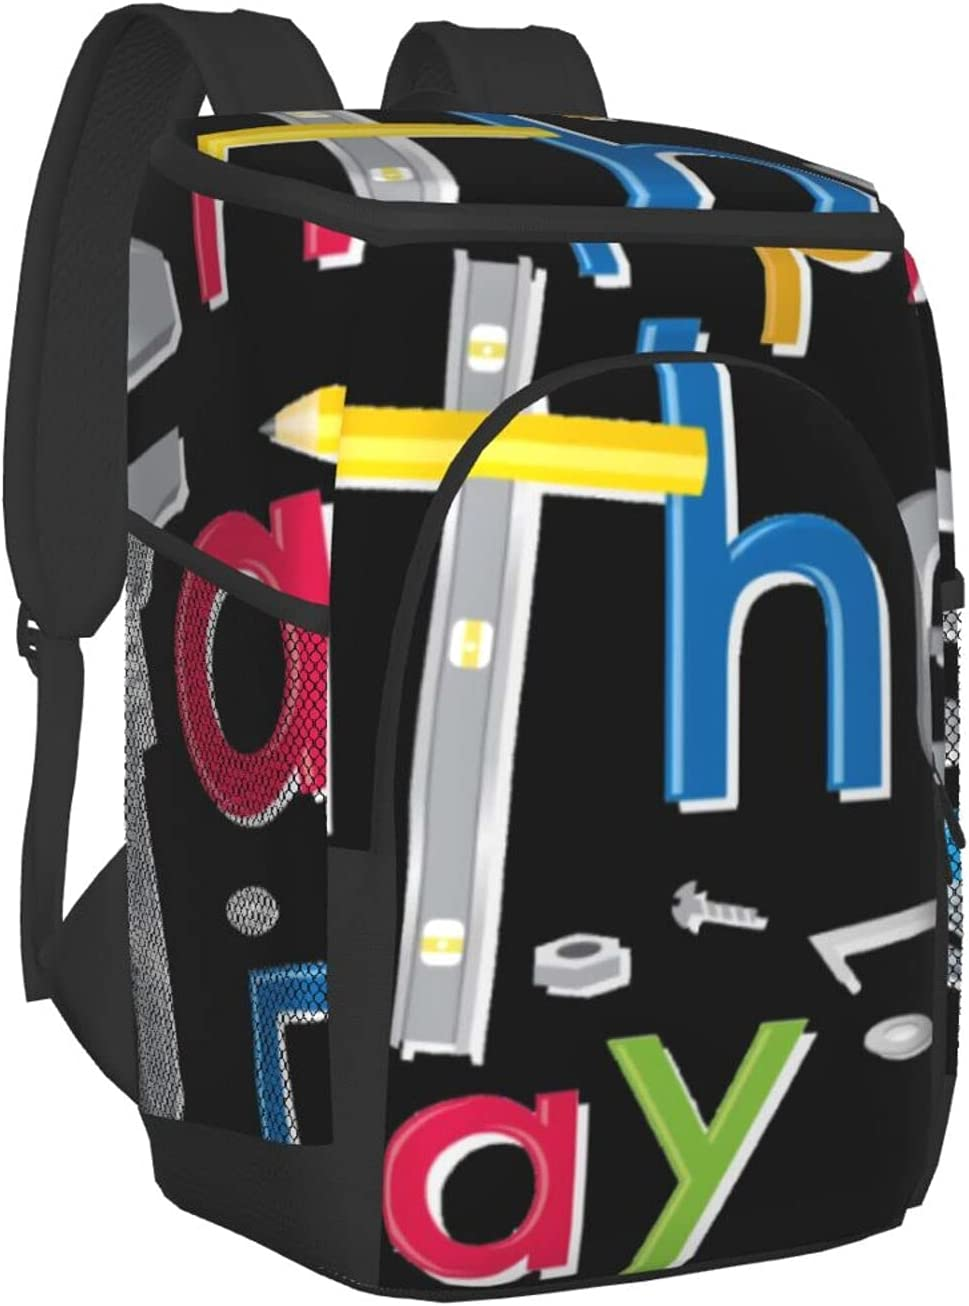 Finally popular brand Black Sheep Insulated Special price for a limited time Backpack Leakproof Small Cooler Bag Portab